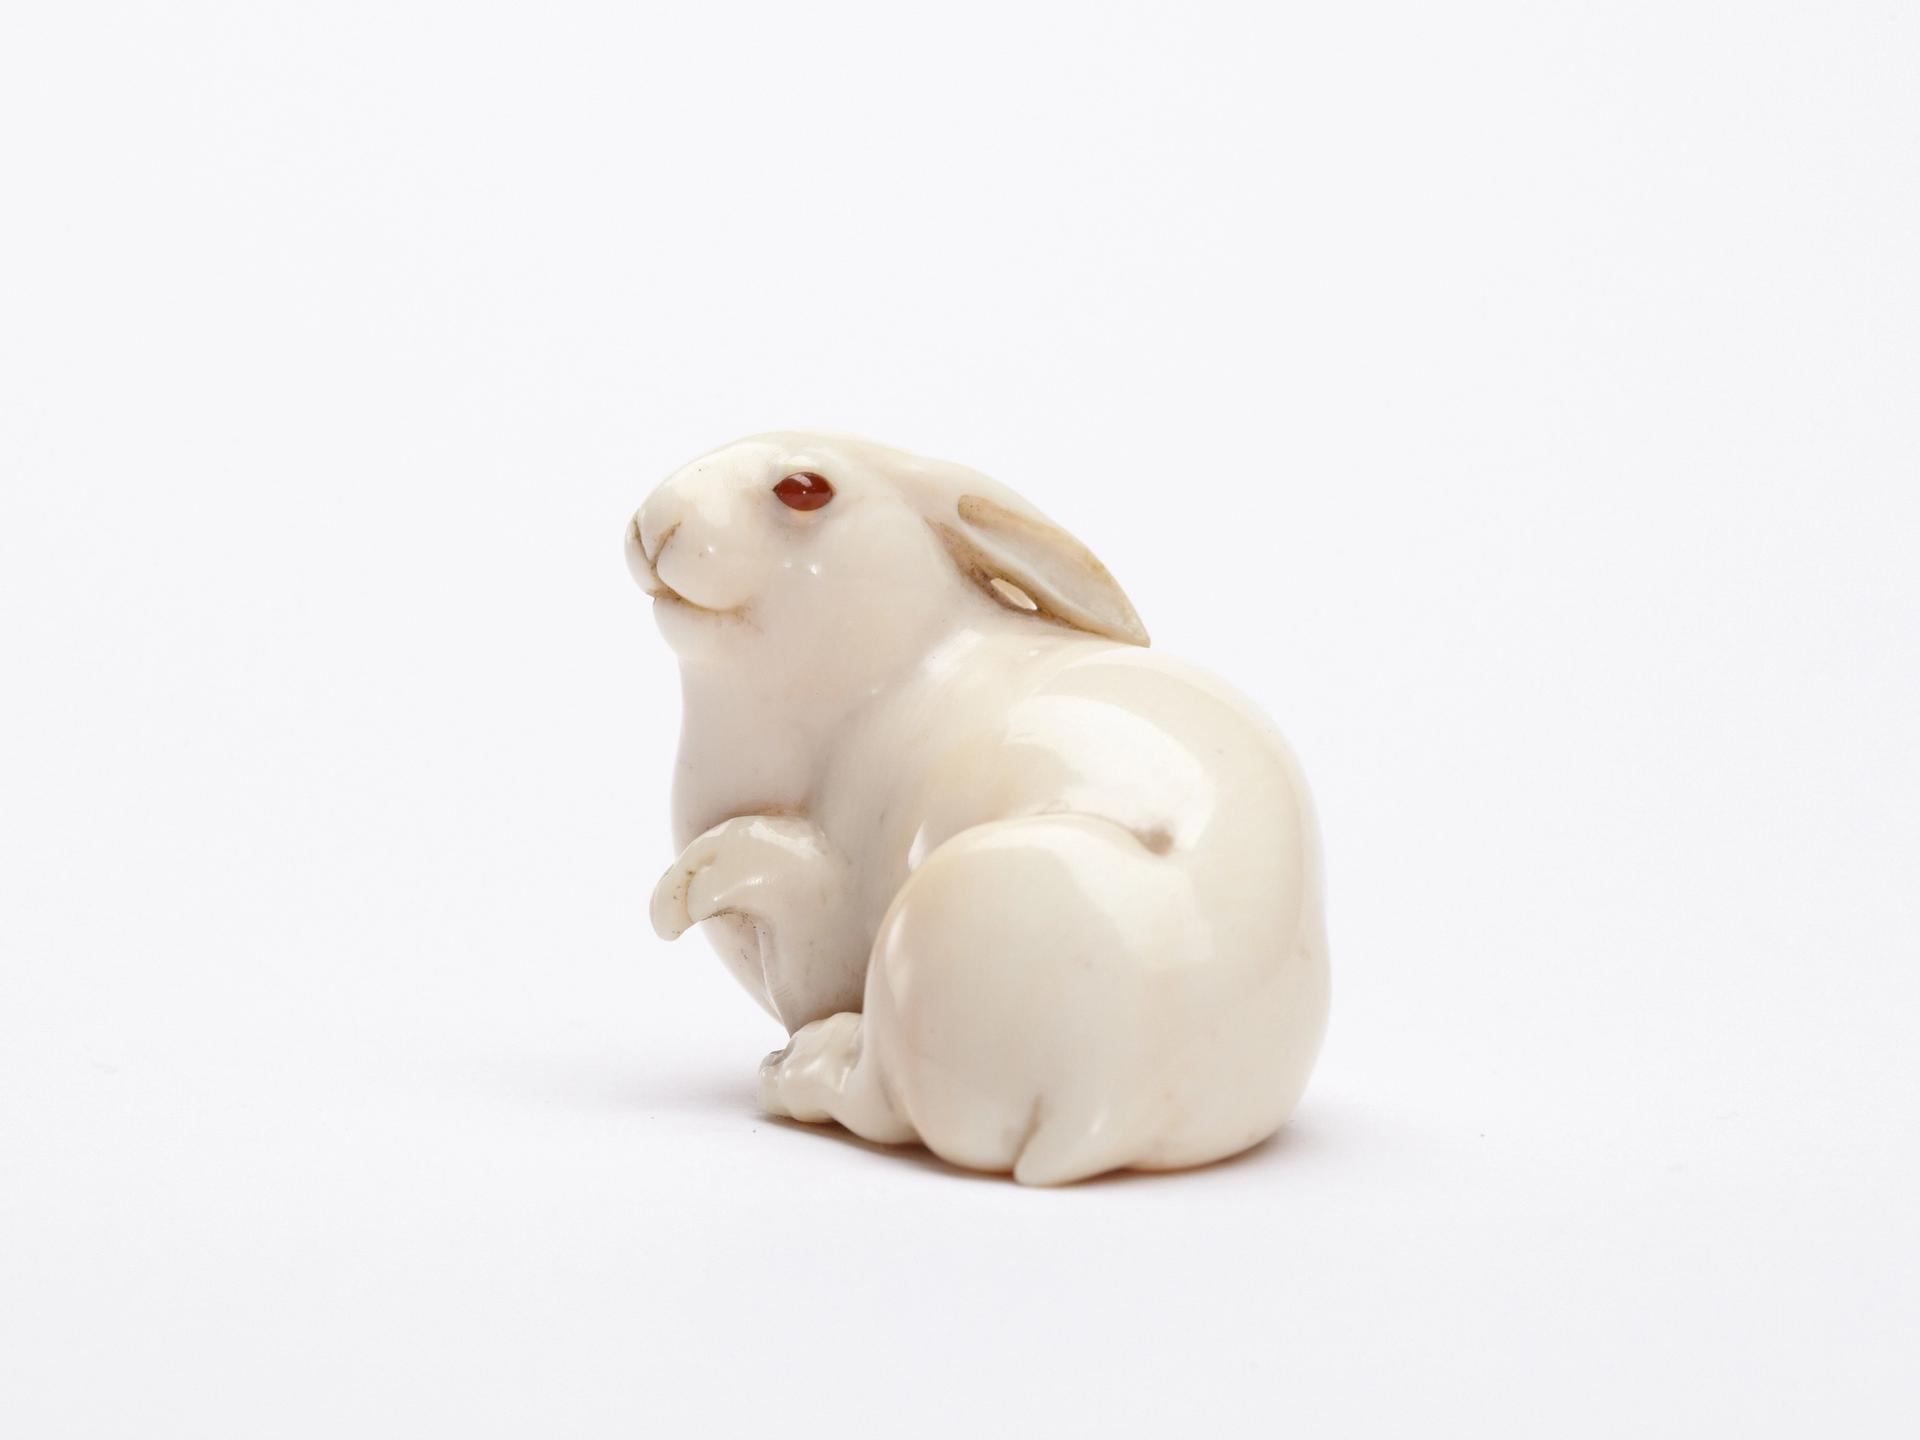 Ivory netsuke of the Hare with Amber Eyes, held in the collection of Edmund de Waal © Lostrobots